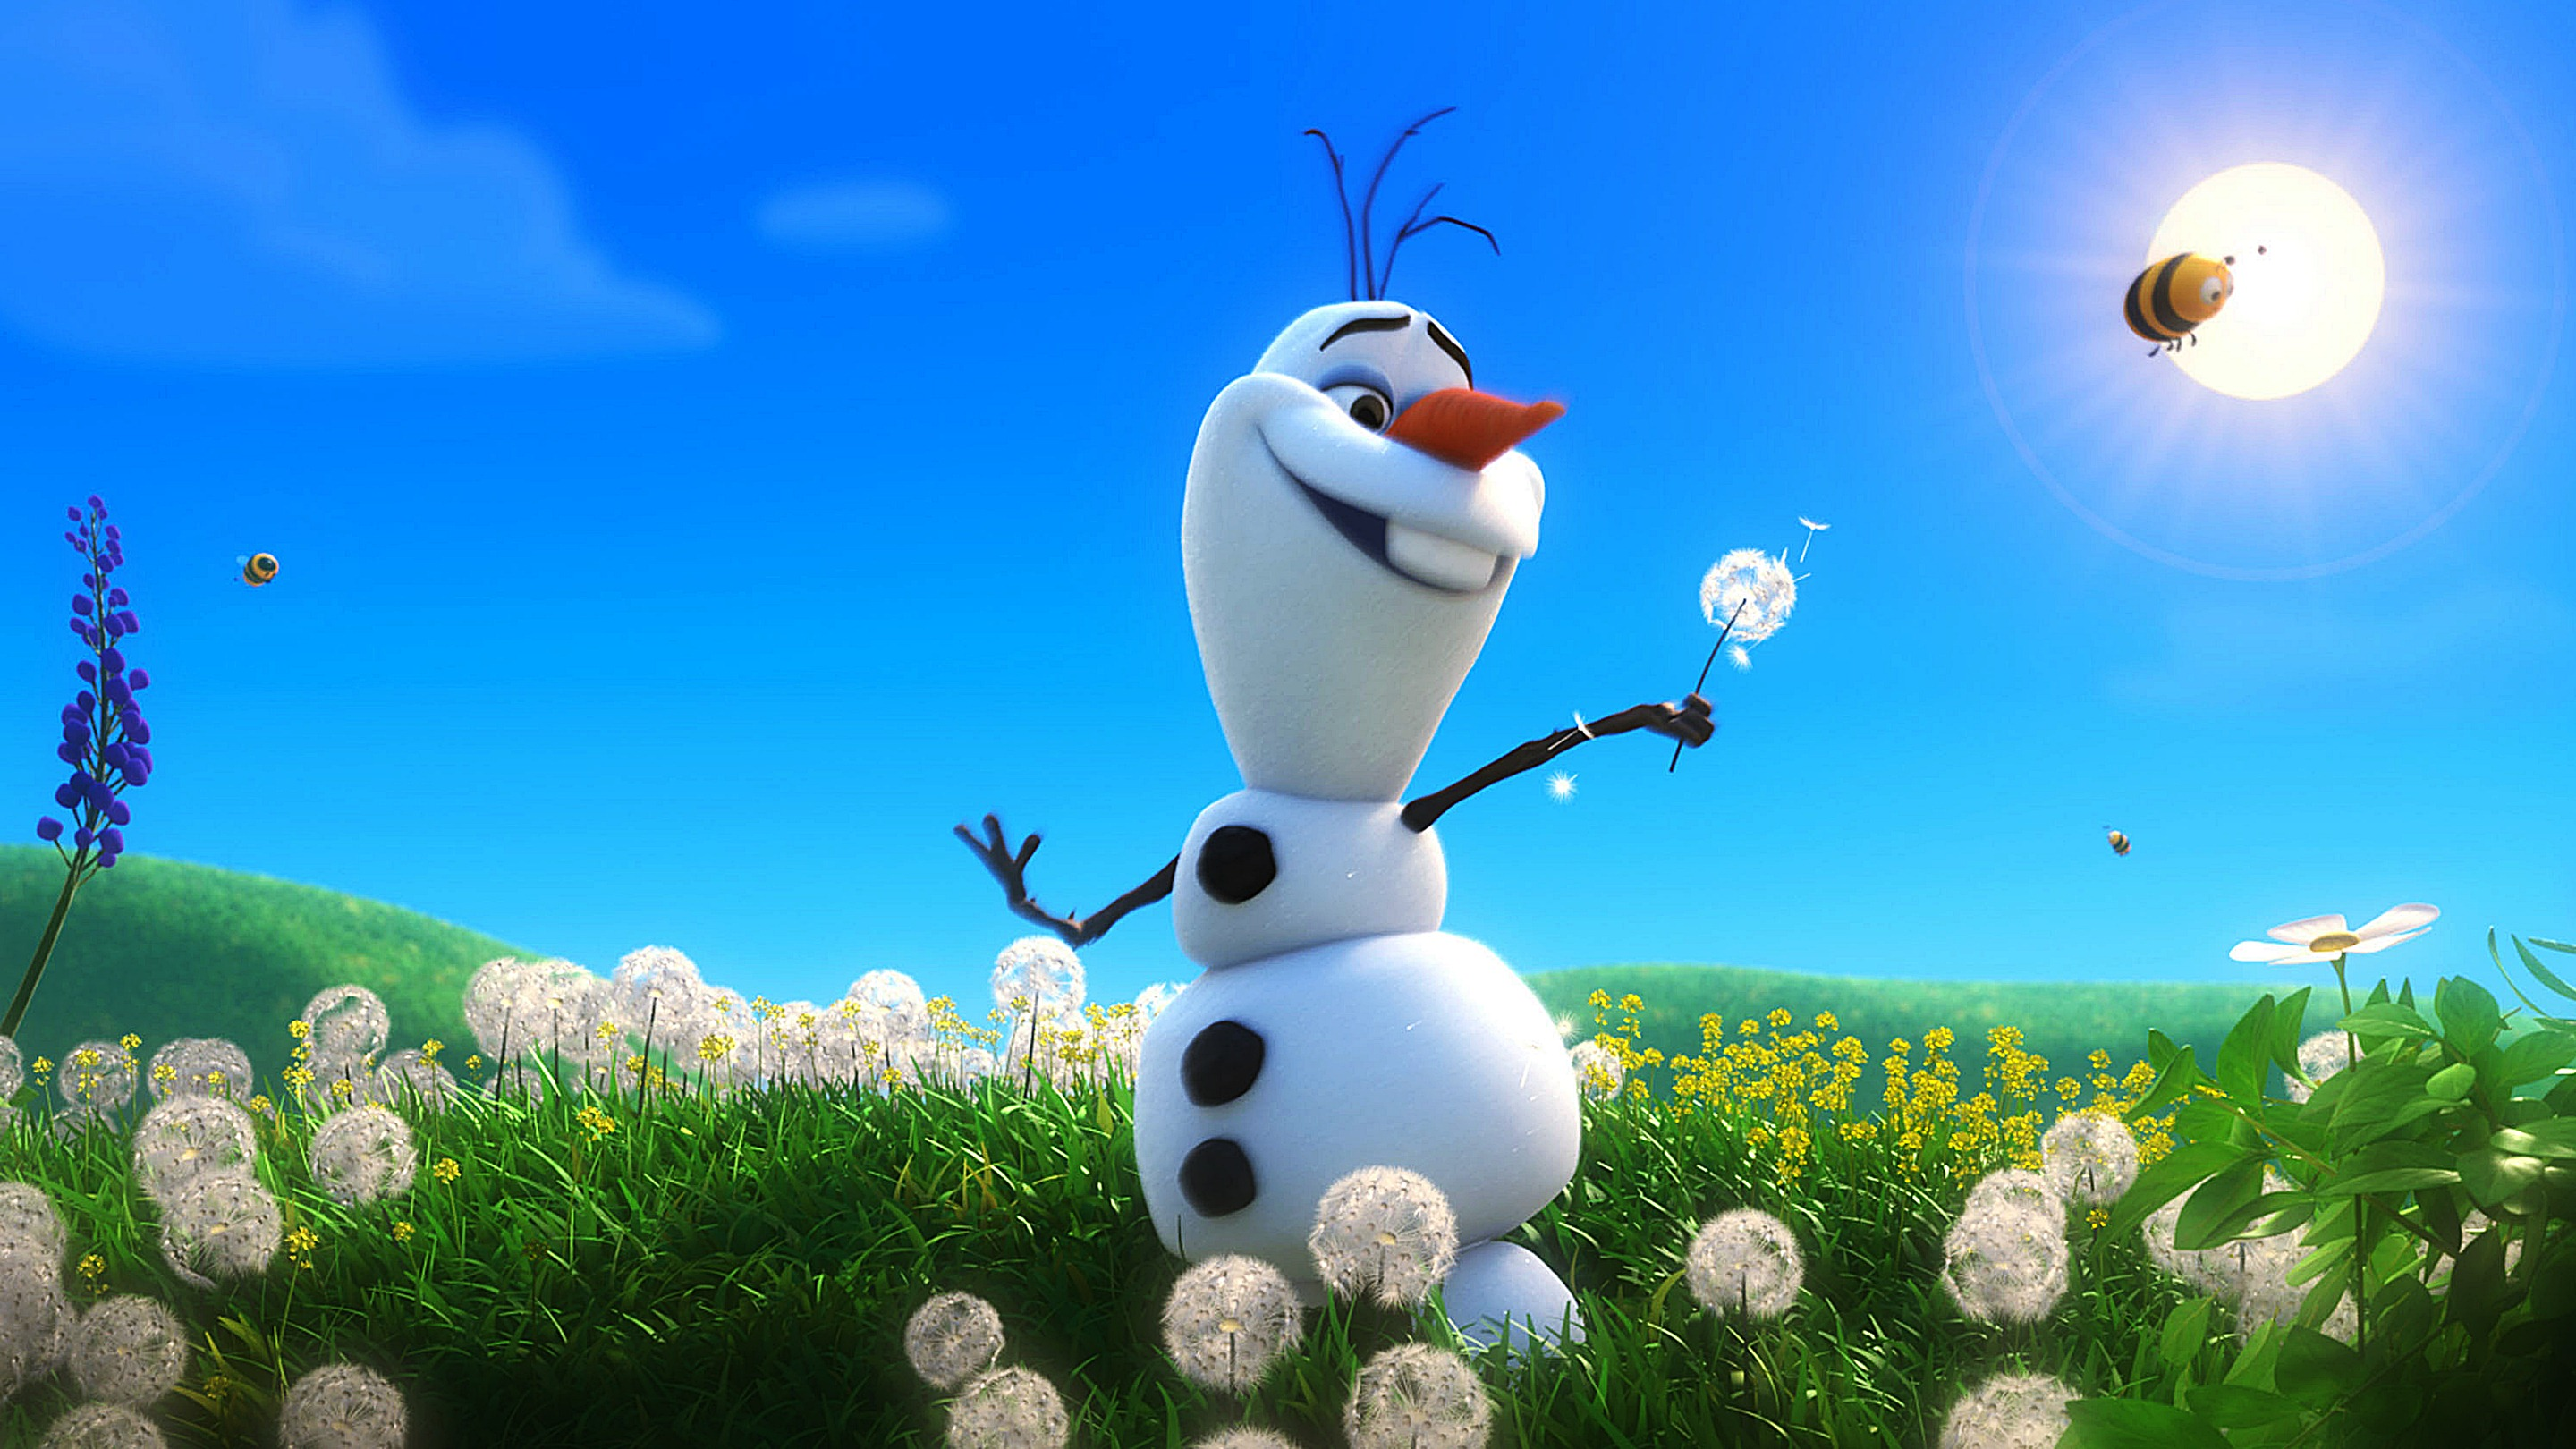 Funny Olaf Snowman In Summer Hd Wallpaper Download Cartoon picture 2880x1620